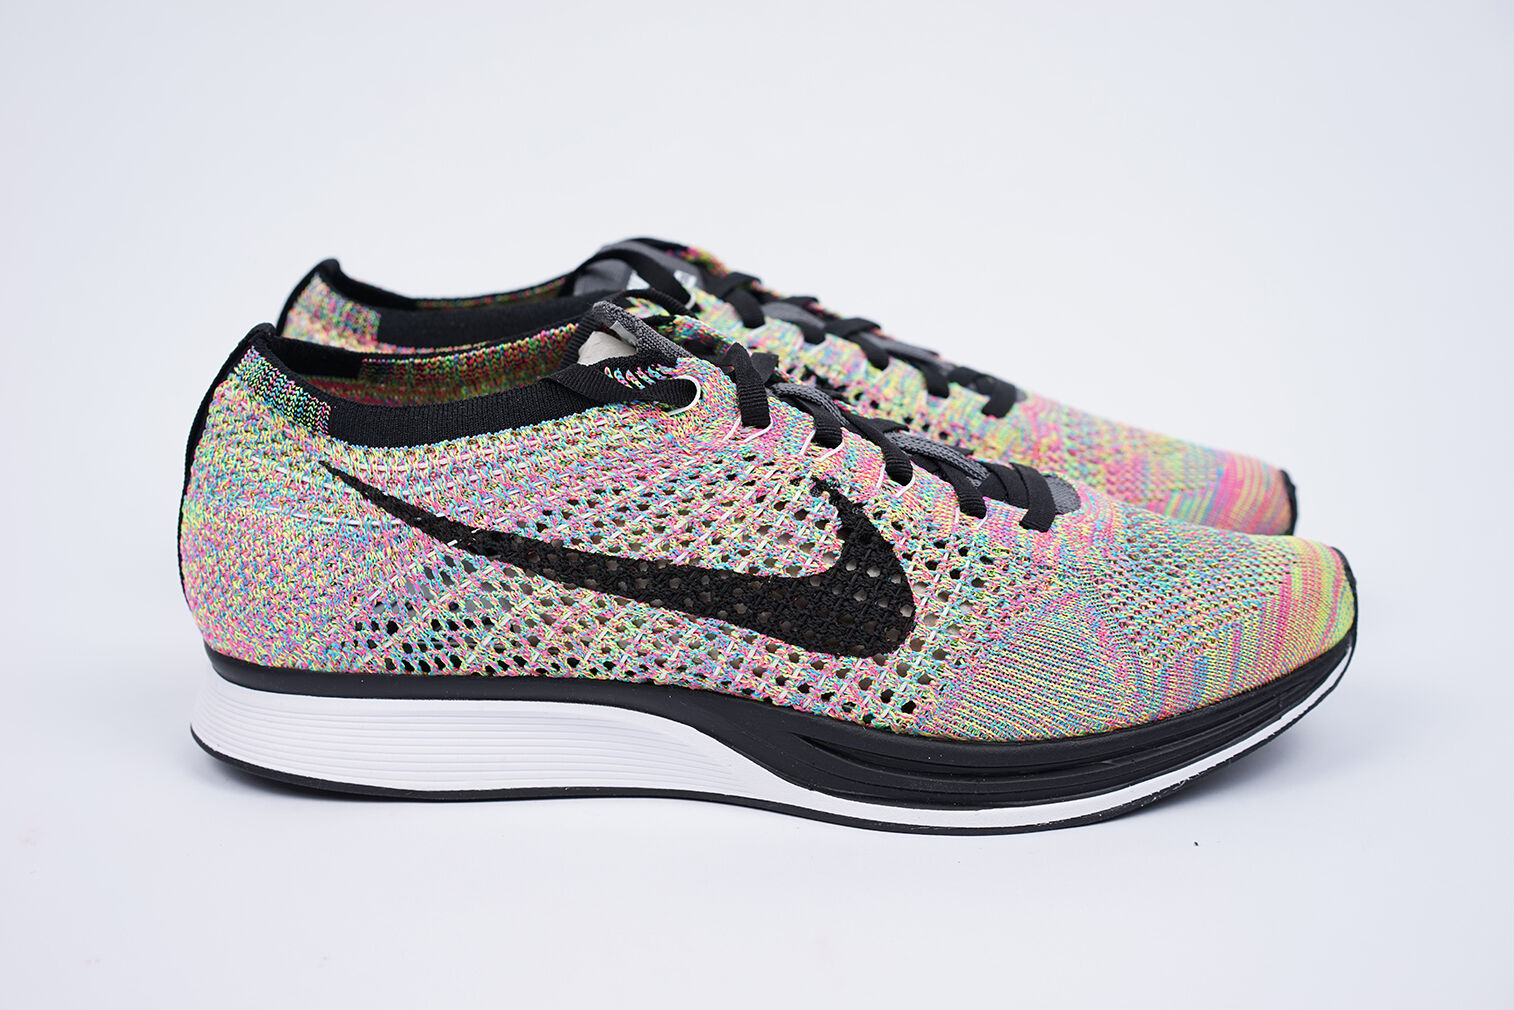 2018 Nike Flyknit Racer  -  Rainbow  -  US9 UK8 EU42.5  -  HTM  -  Fragment Wild casual shoes